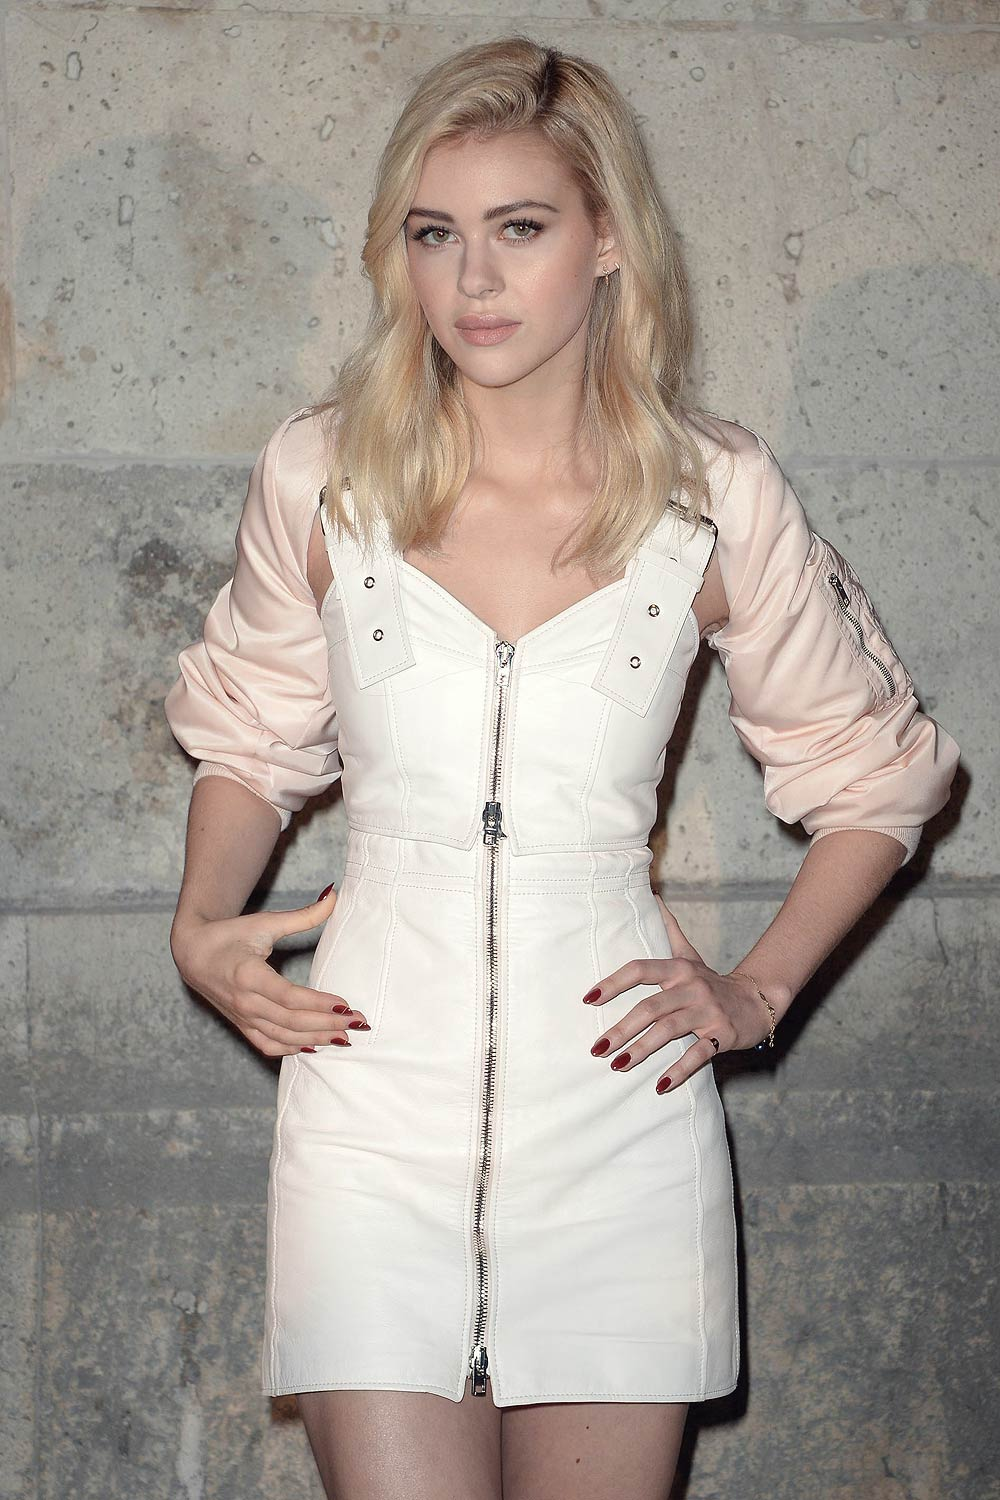 nicola peltz attends givenchy fashion show leather